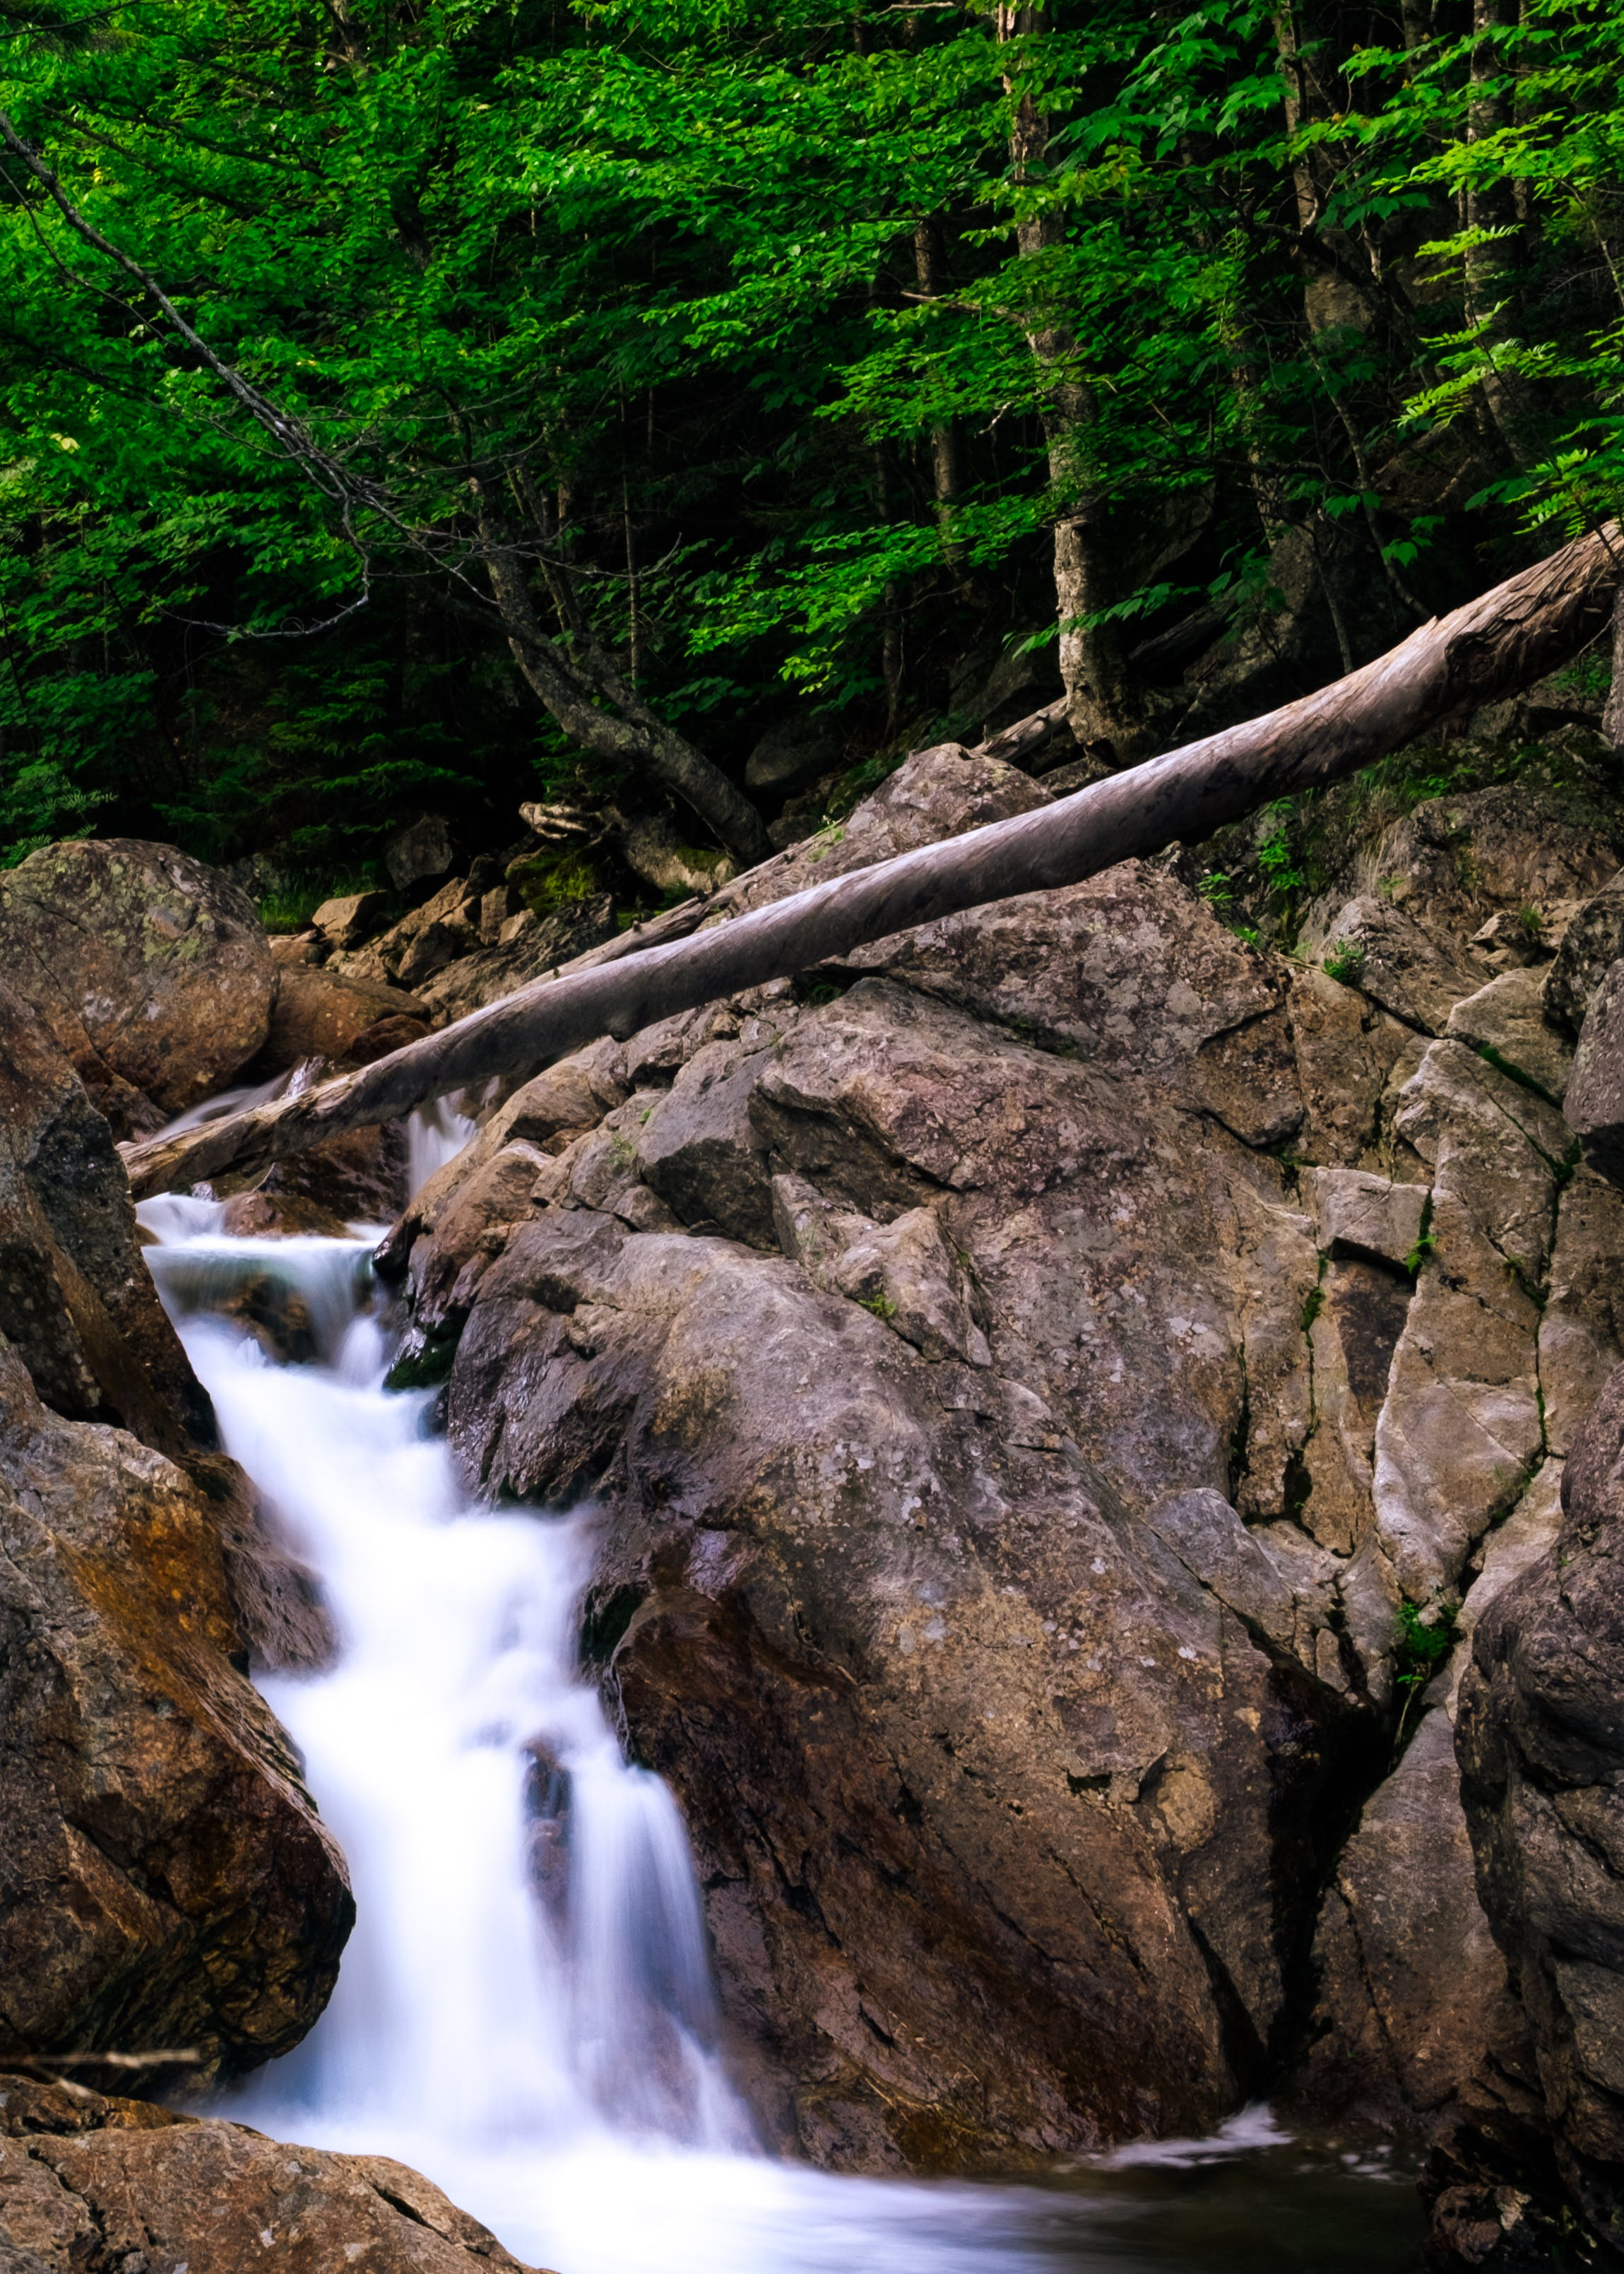 Free stock photo of clear water, forest, Mossy rocks, nature